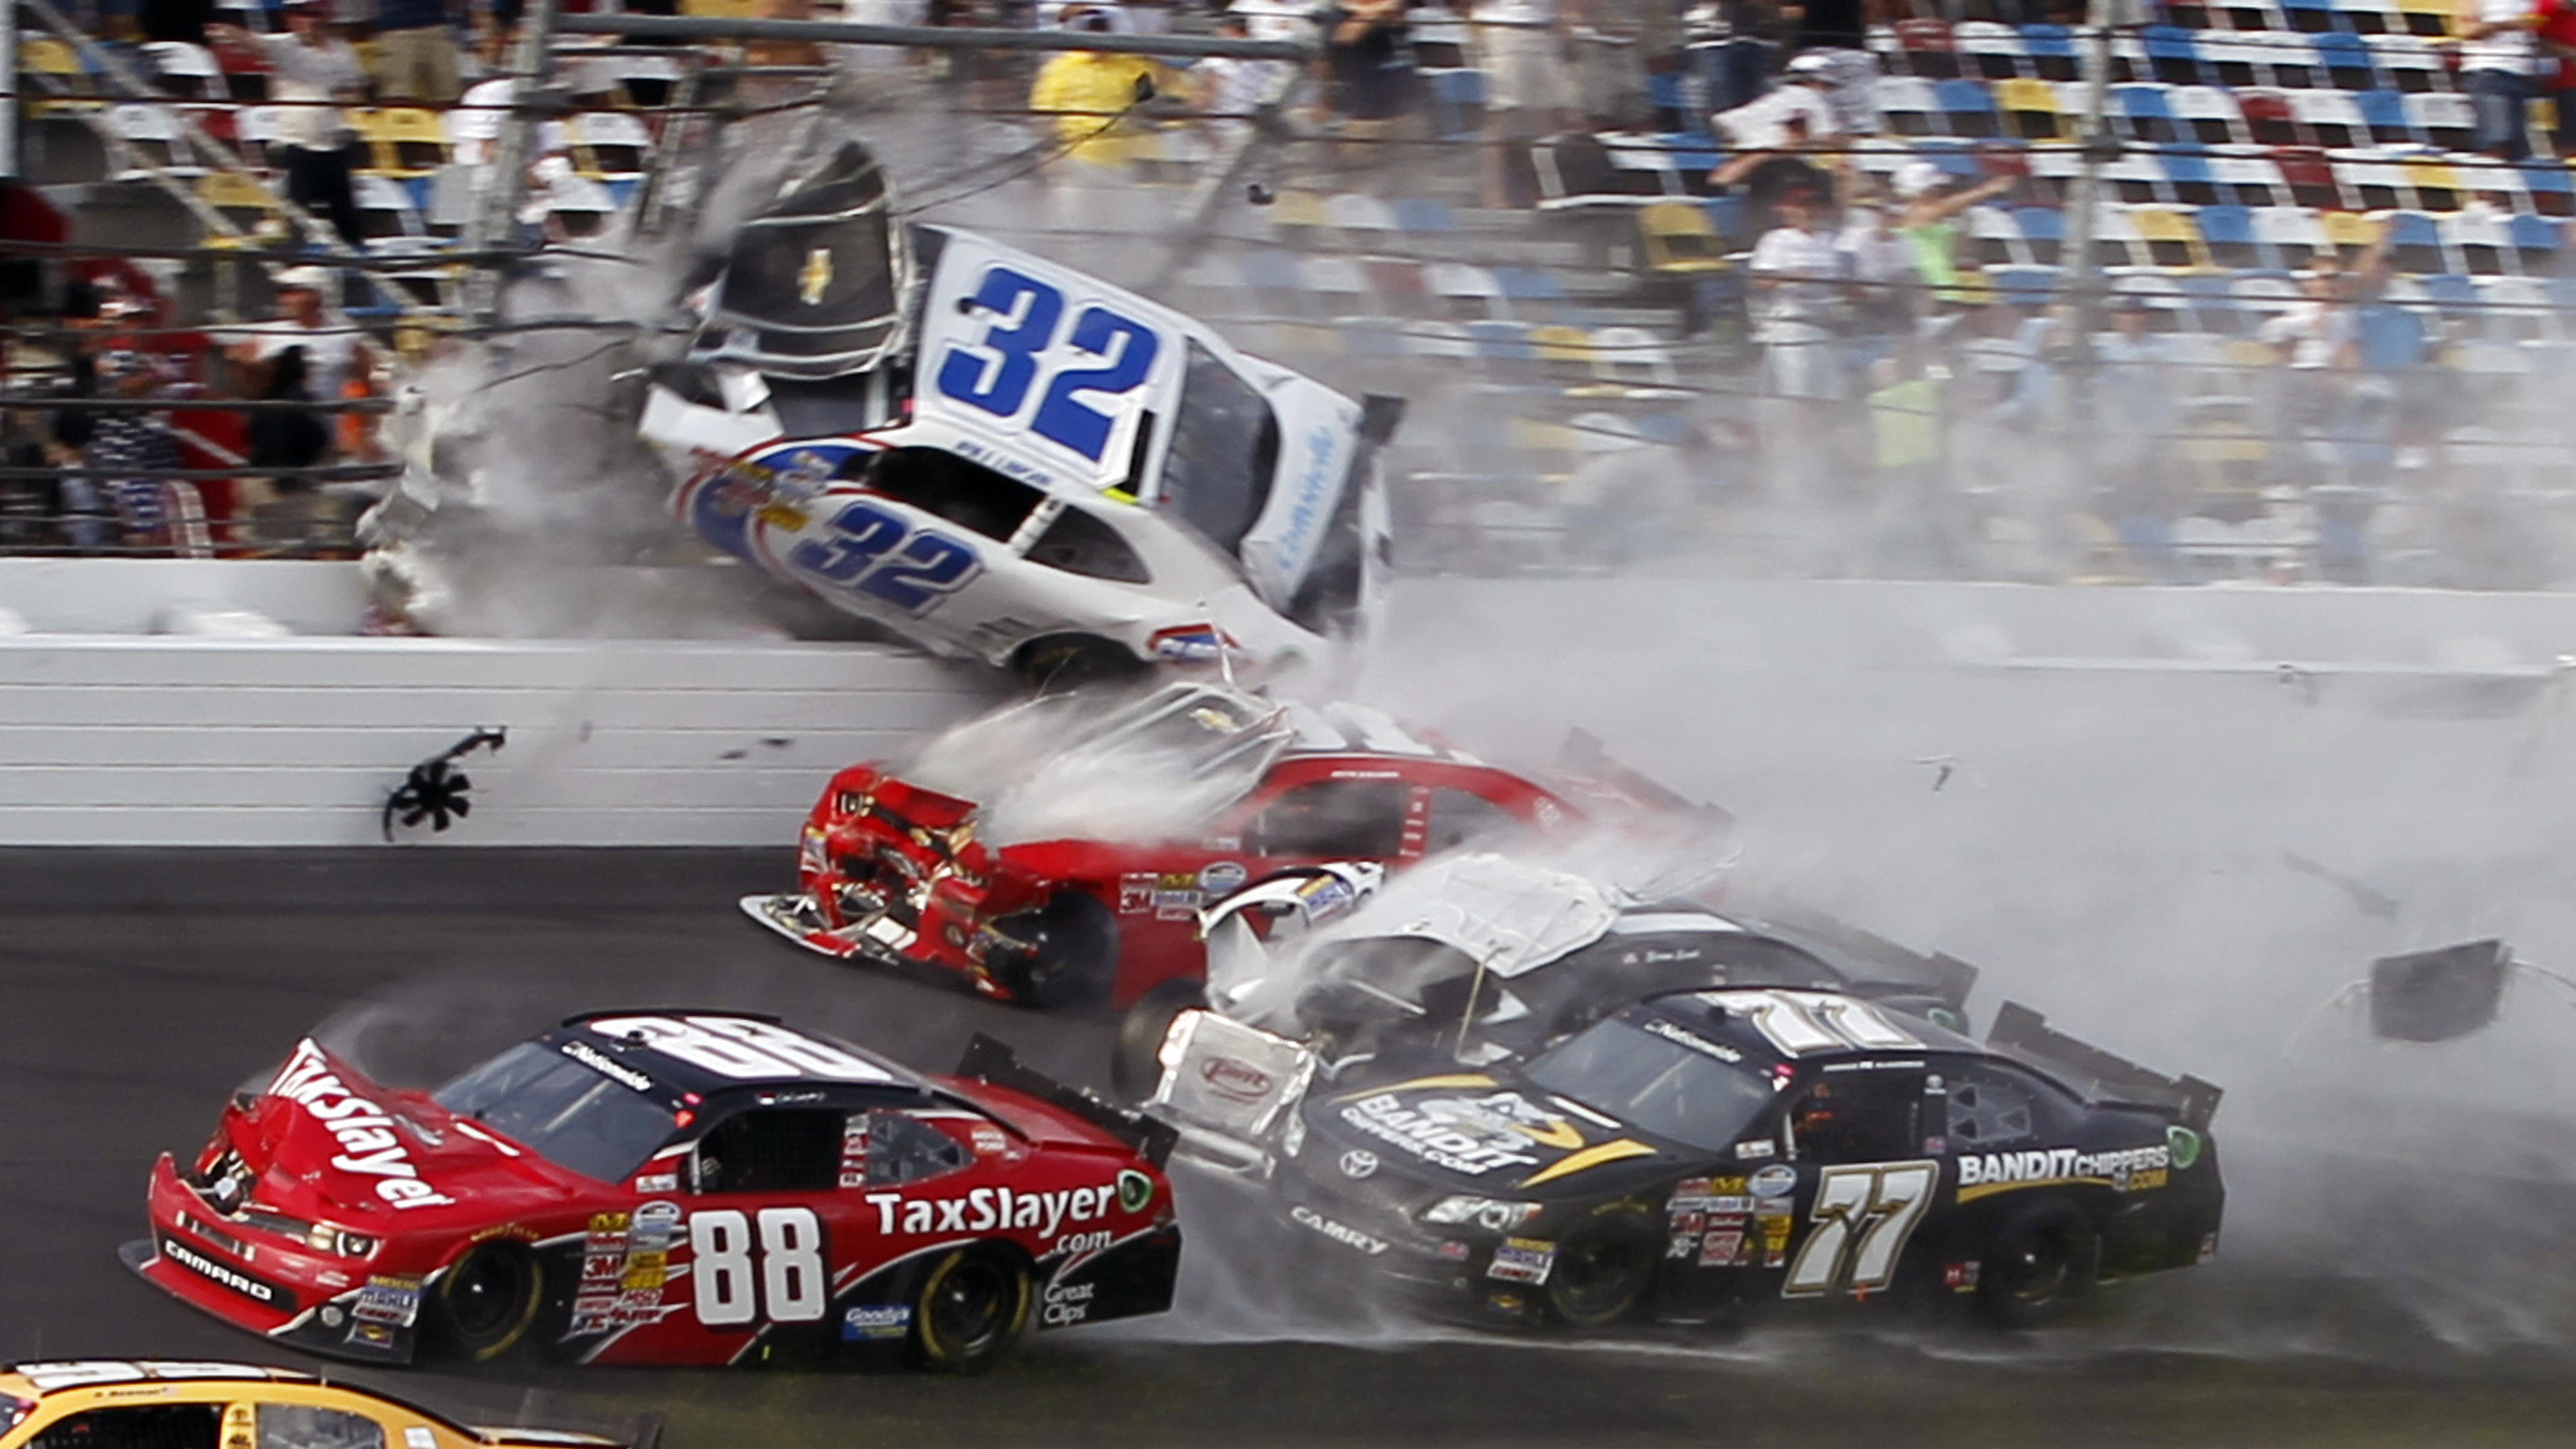 NASCAR Crash Sends Car Debris Into The Stands At Daytona | WWNO